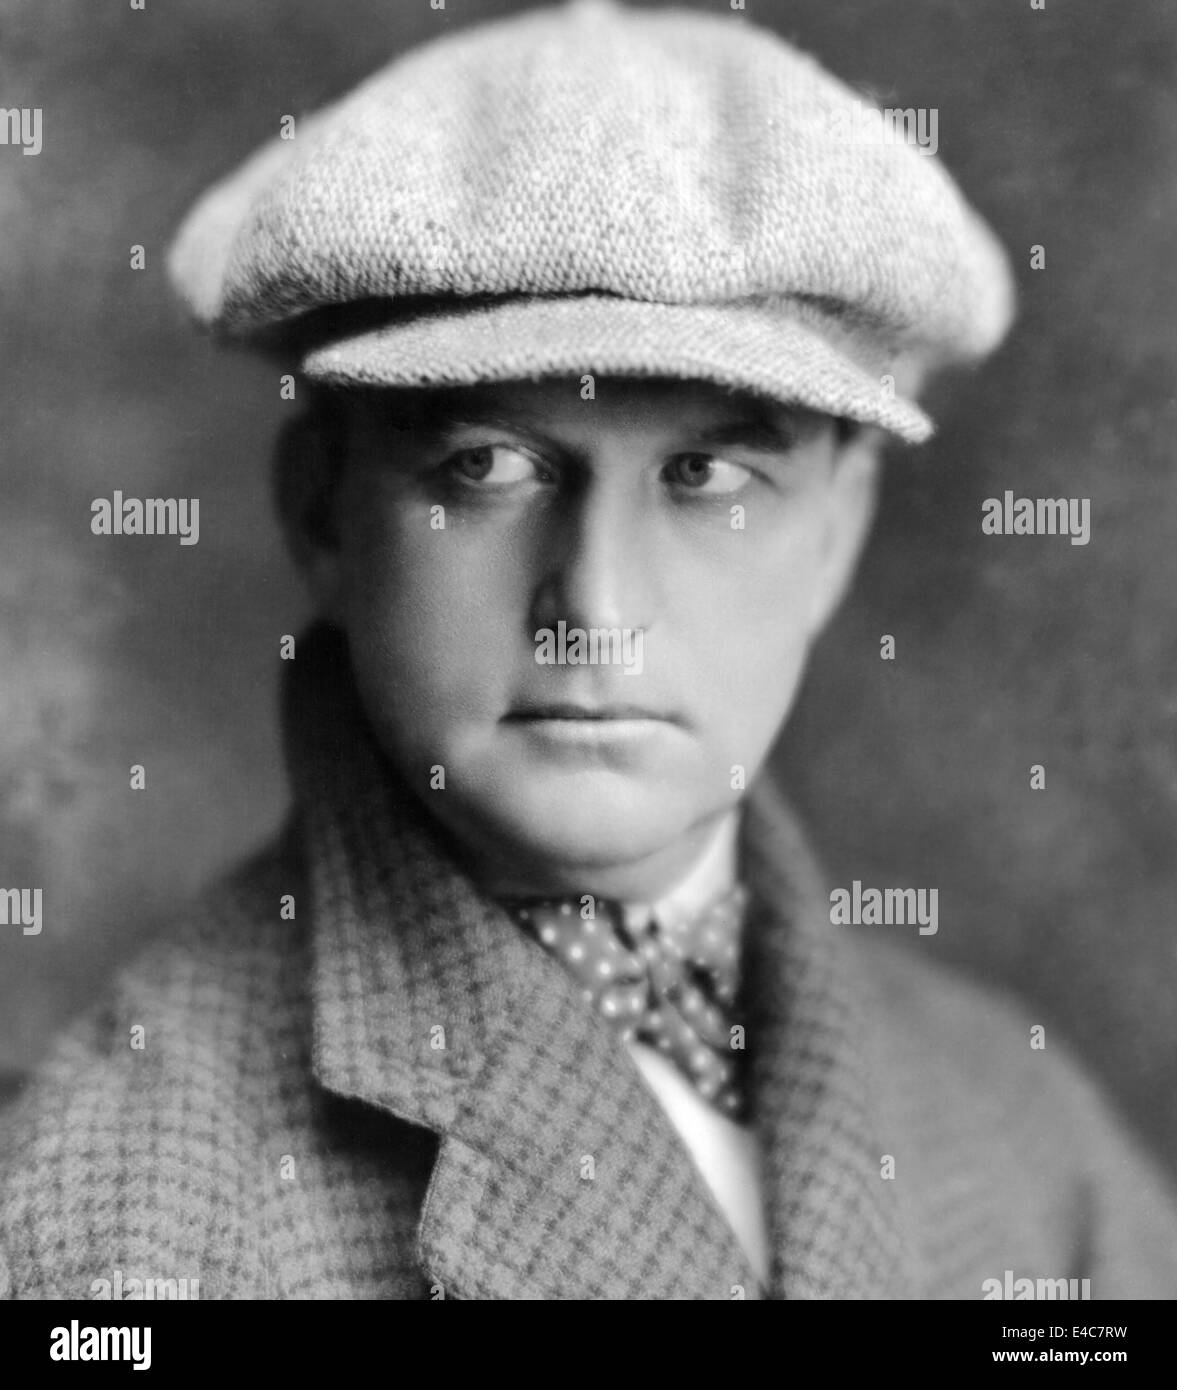 Thomas Ince (1882-1924), American Silent Film Producer and Director, Portrait, circa 1910's - Stock Image